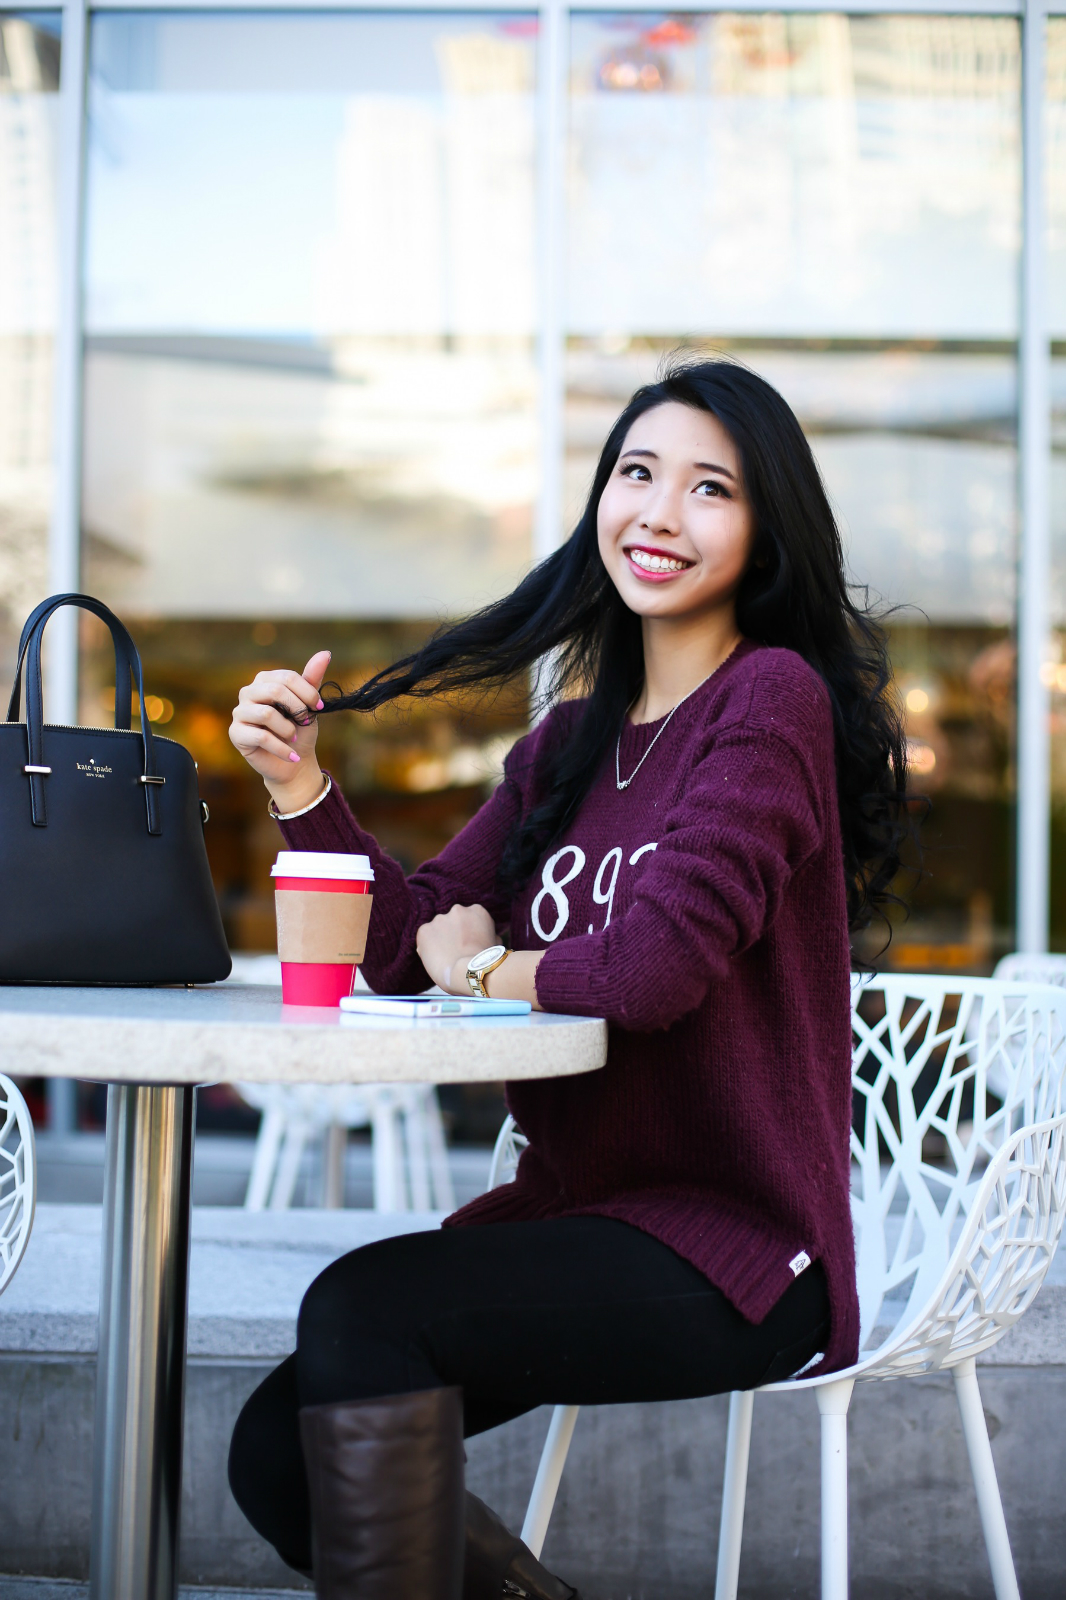 asian girl coffee cafe cute smiling happy black hair chinese korean chic sleek beautiful table drink model san francisco starbucks